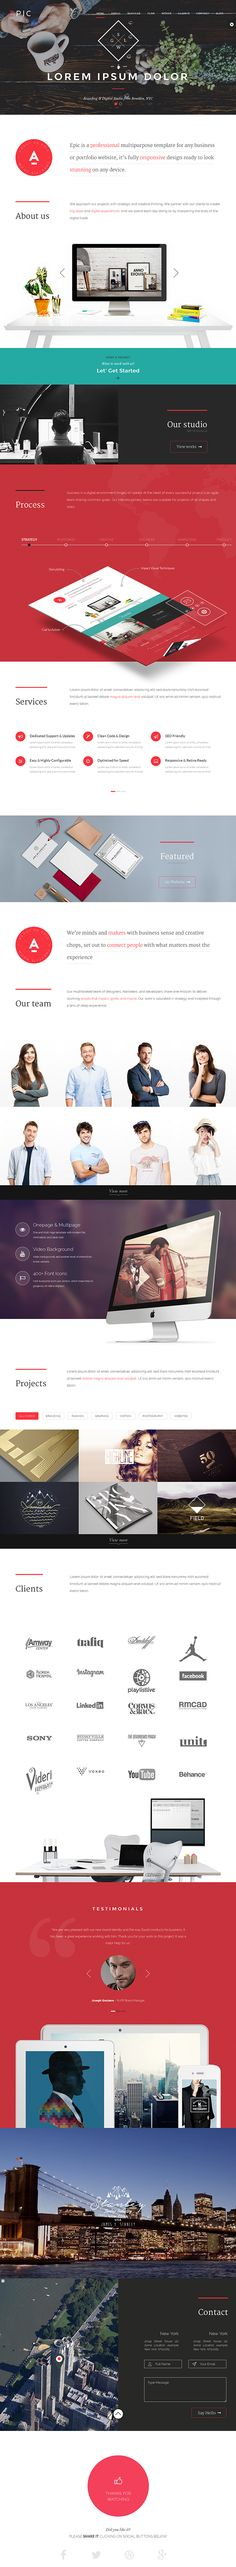 EPIC - Responsive Multi-Purpose Theme for Wordpress. Ui design concept and developing by Web Create.Me on Behance.